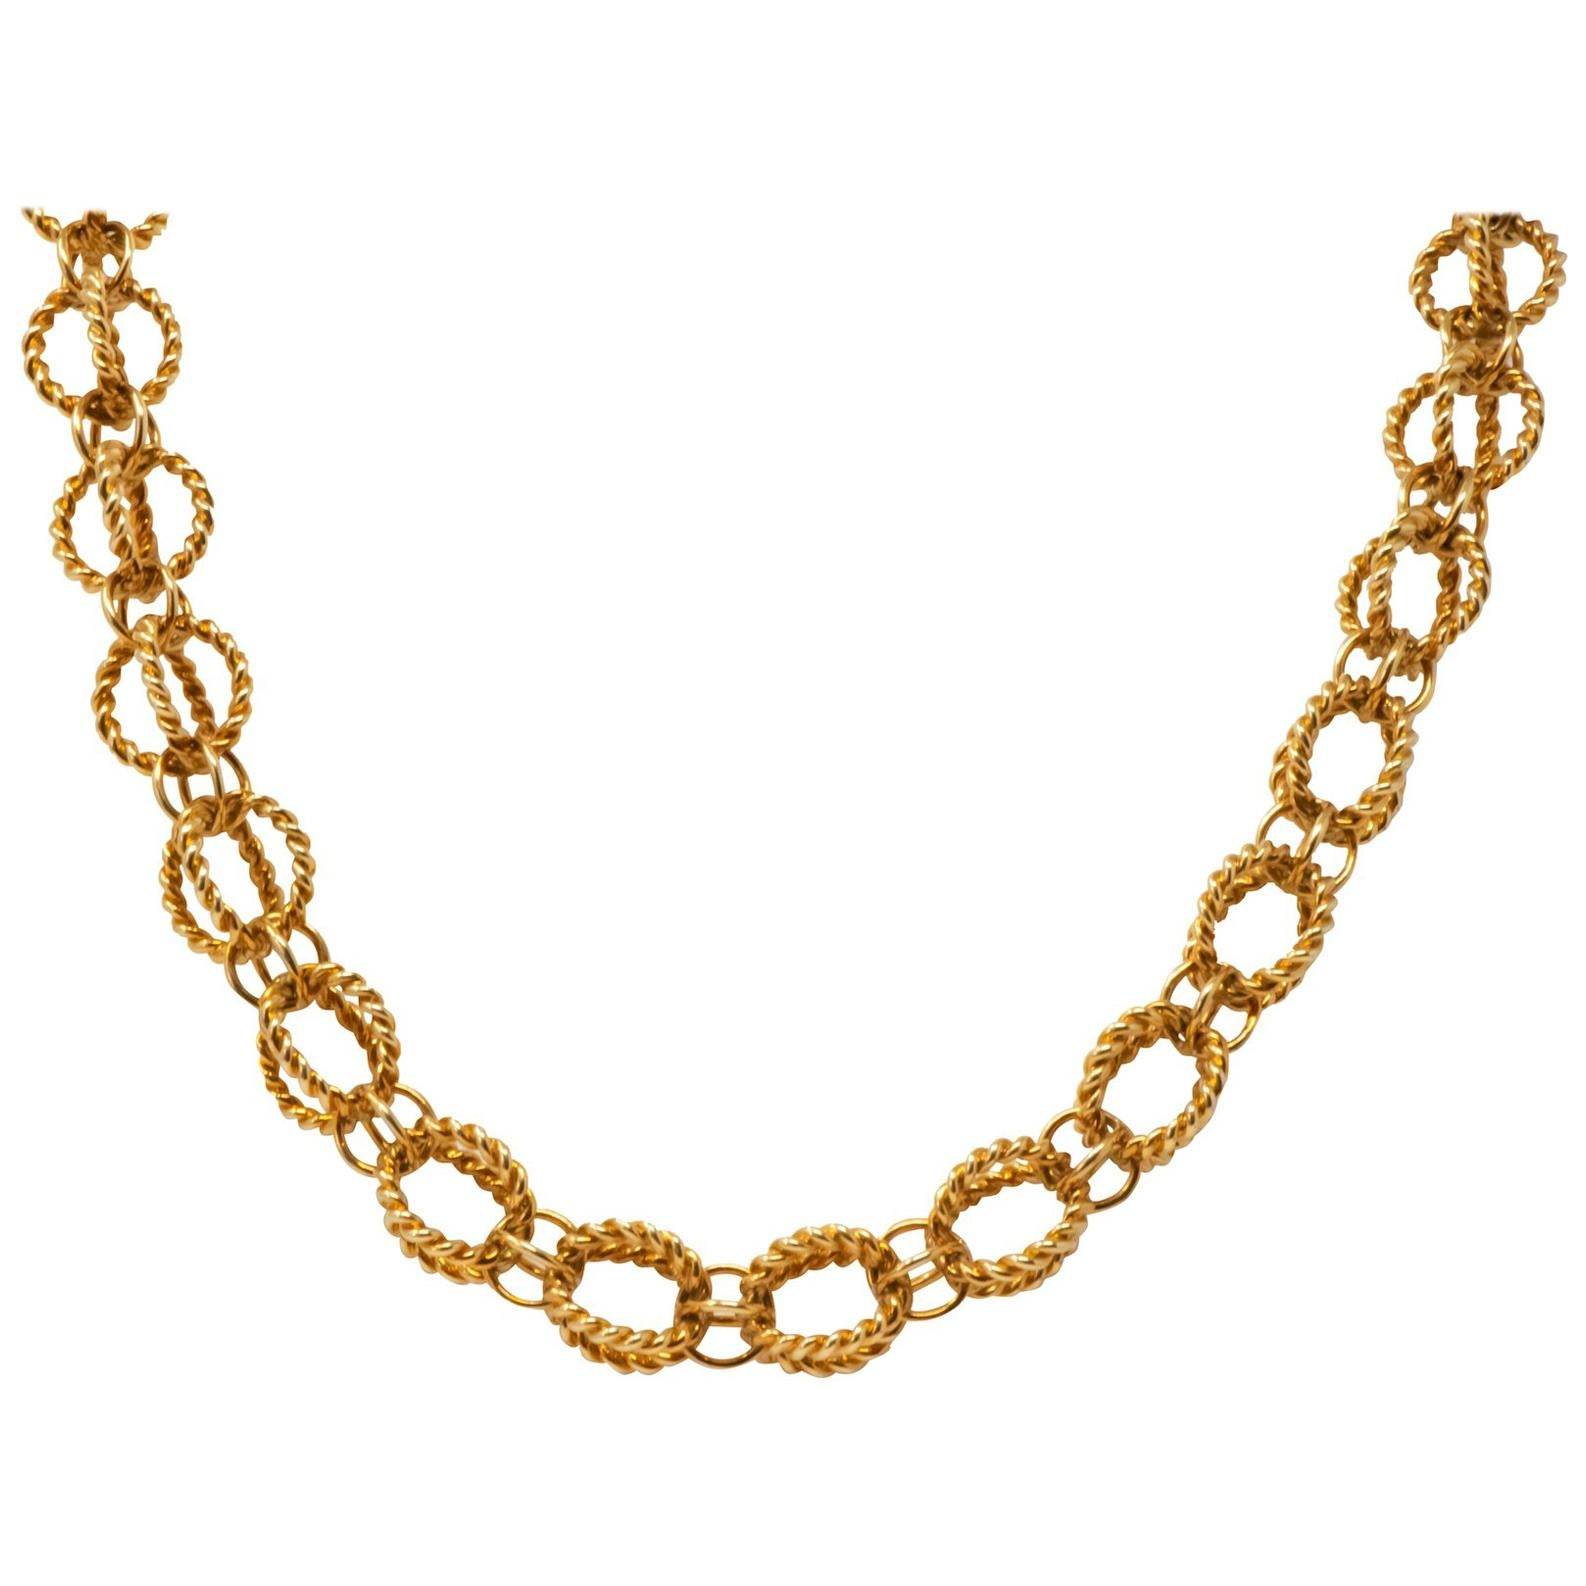 dc23a6c5f Tiffany and Co. Schlumberger Emerald and Gold Twisted Rope Necklace For  Sale at 1stdibs